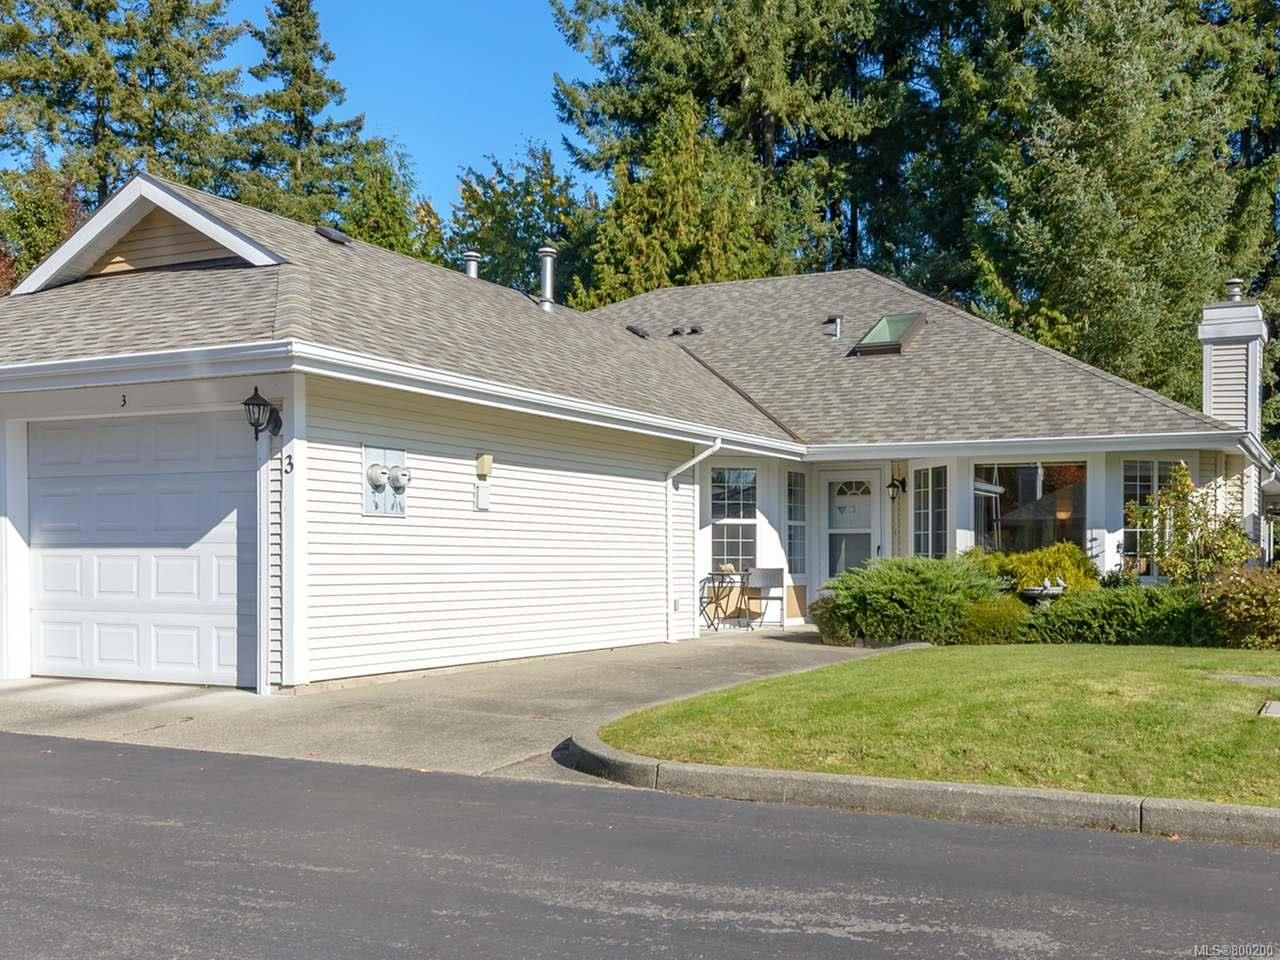 Main Photo: 3 2010 20th St in COURTENAY: CV Courtenay City Row/Townhouse for sale (Comox Valley)  : MLS®# 800200